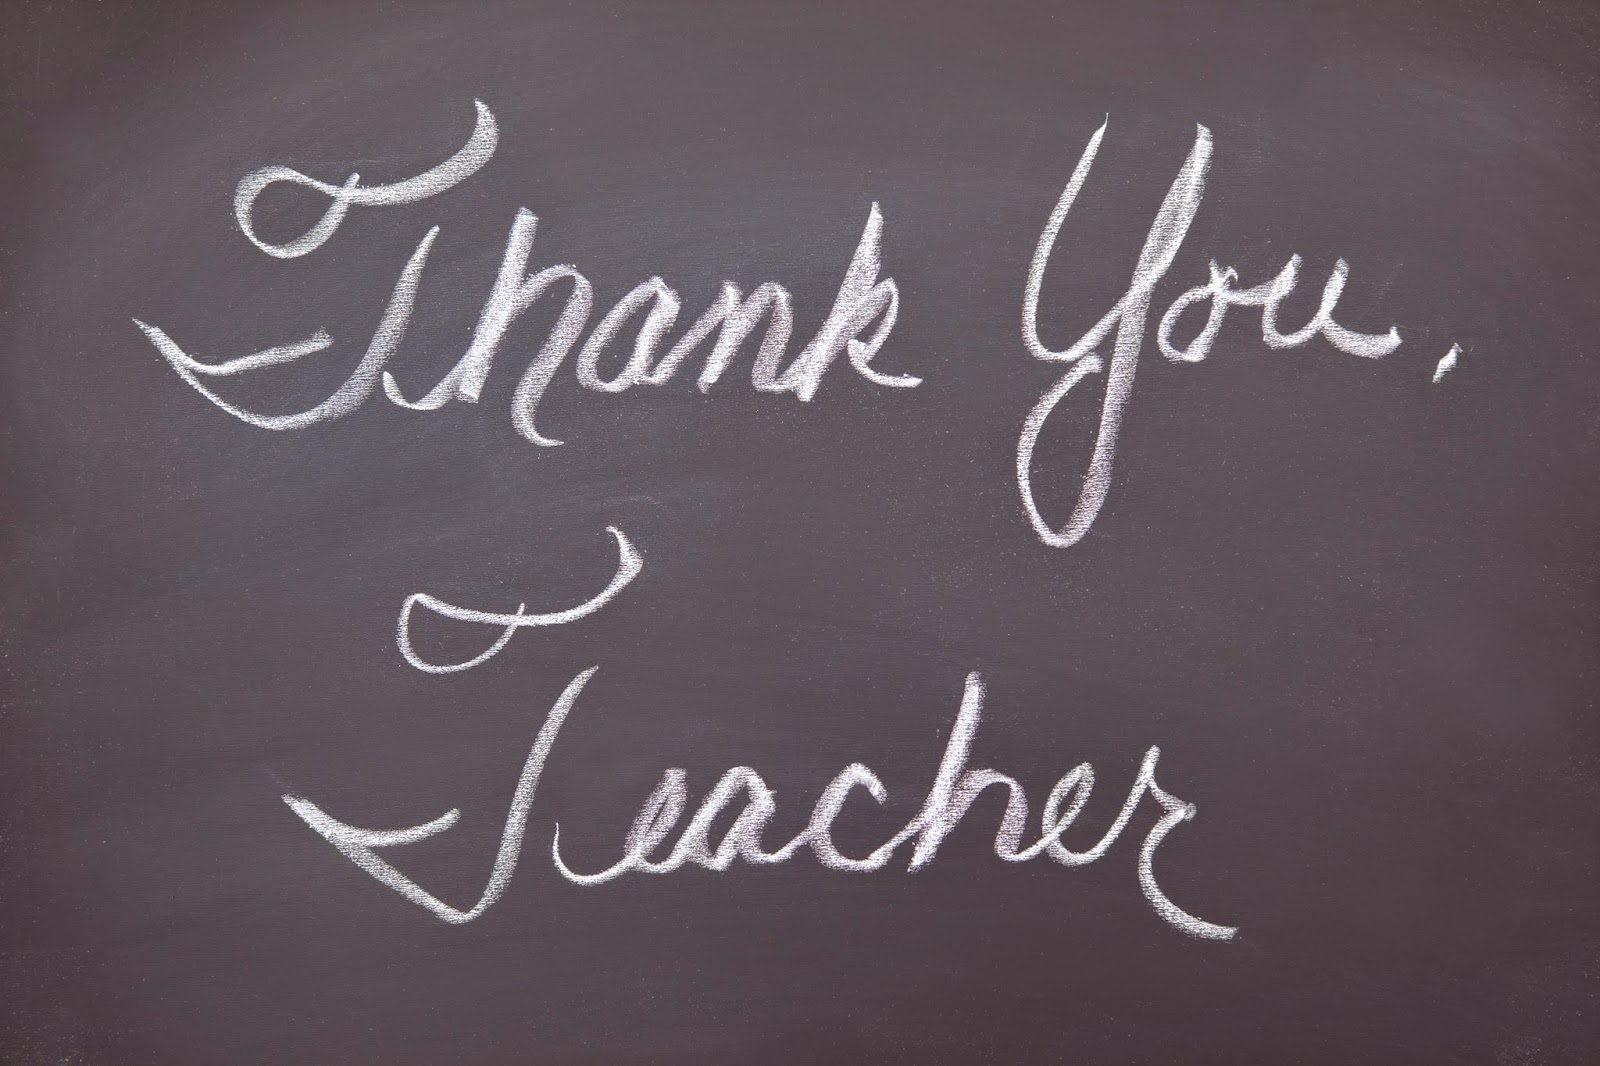 Happy teacher appreciation week literary sherri a bit of a blogging hiatus to care for some other priorities and i cant think of a better time to re focus on blogging than teacher appreciation week sciox Images